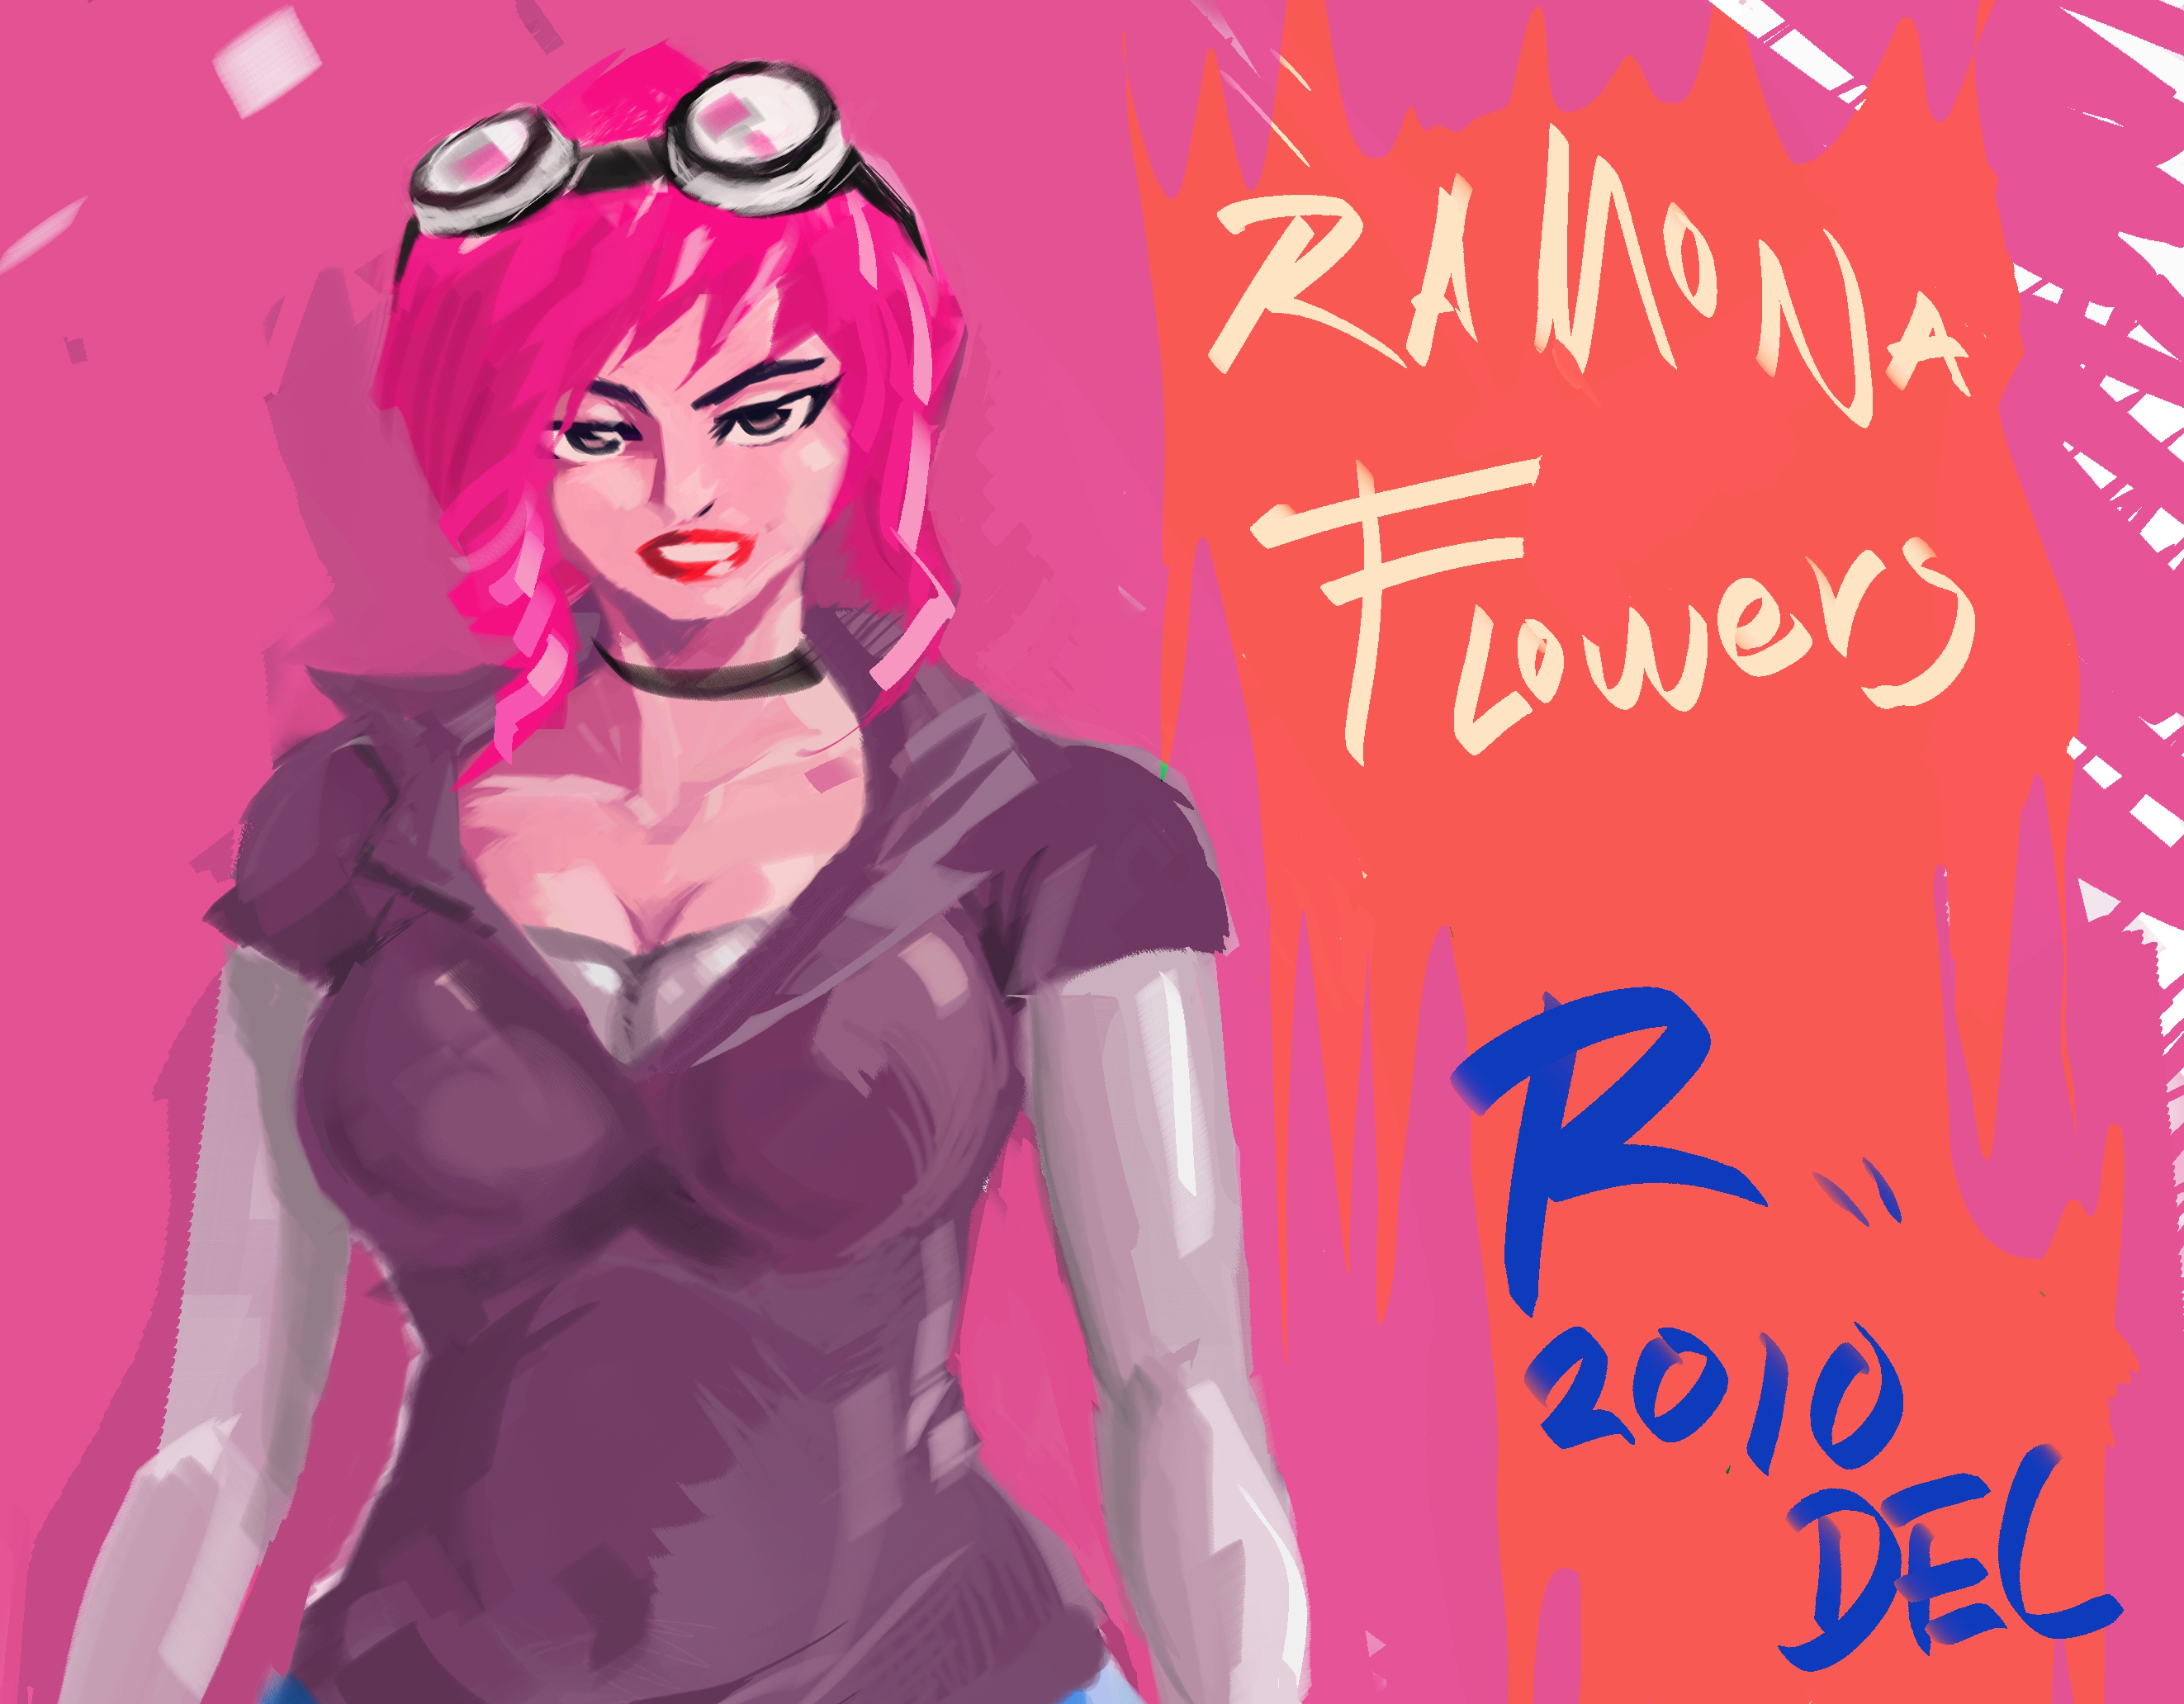 RAMONA FLOWERS short version by Augusto-Rubio